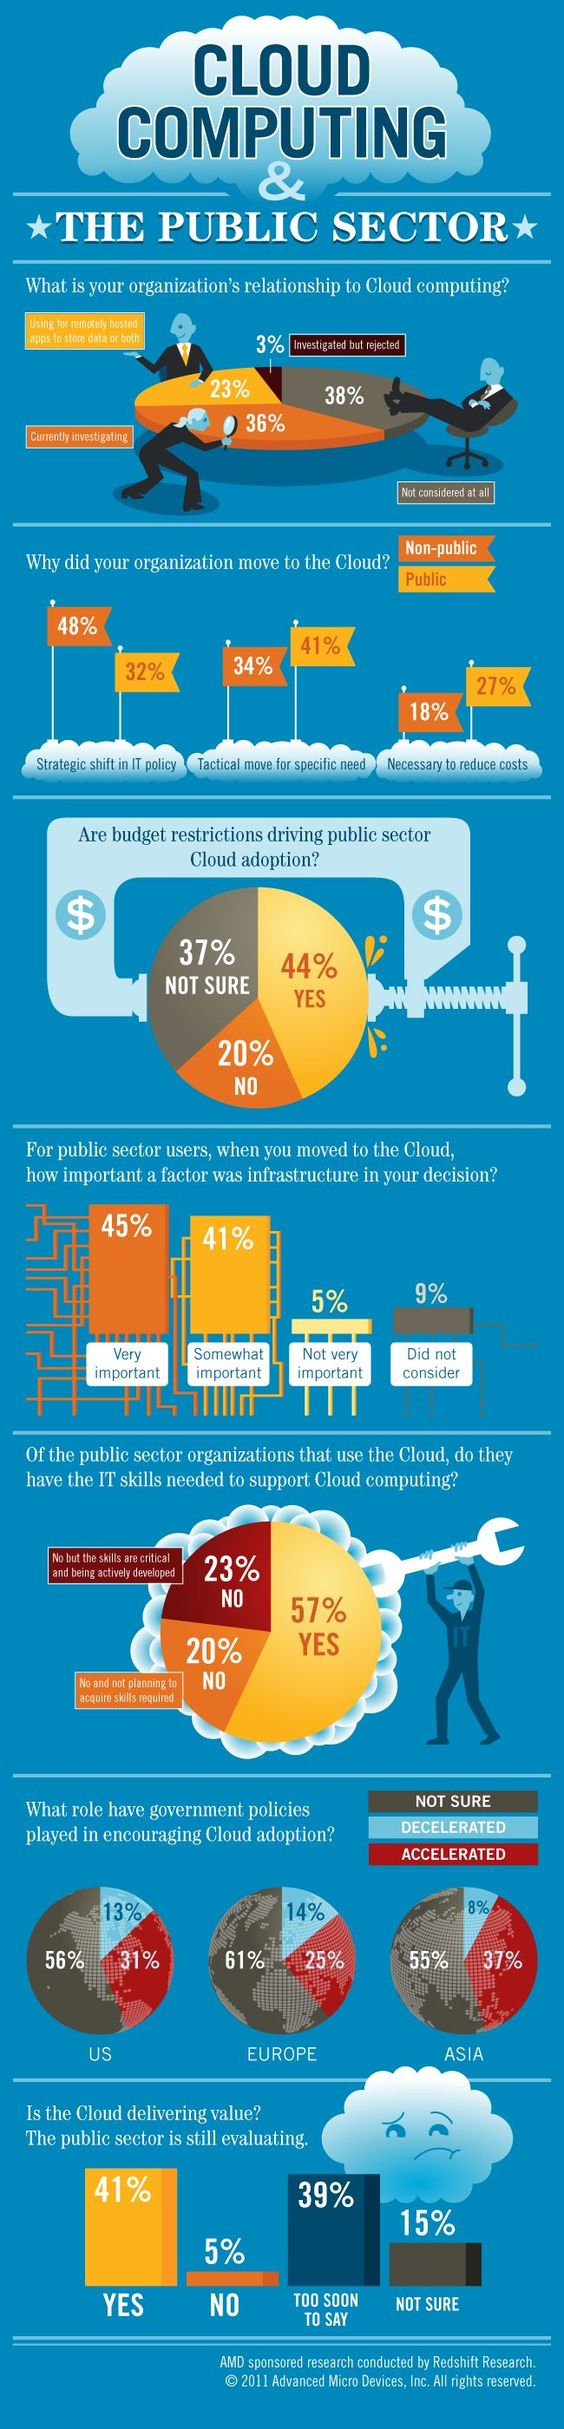 cloud computing and the public sector strategic insights into cloud adoption at the it professional level is growing yet is hitting obstacles like fear of change from businesses getting nervous about the cloud